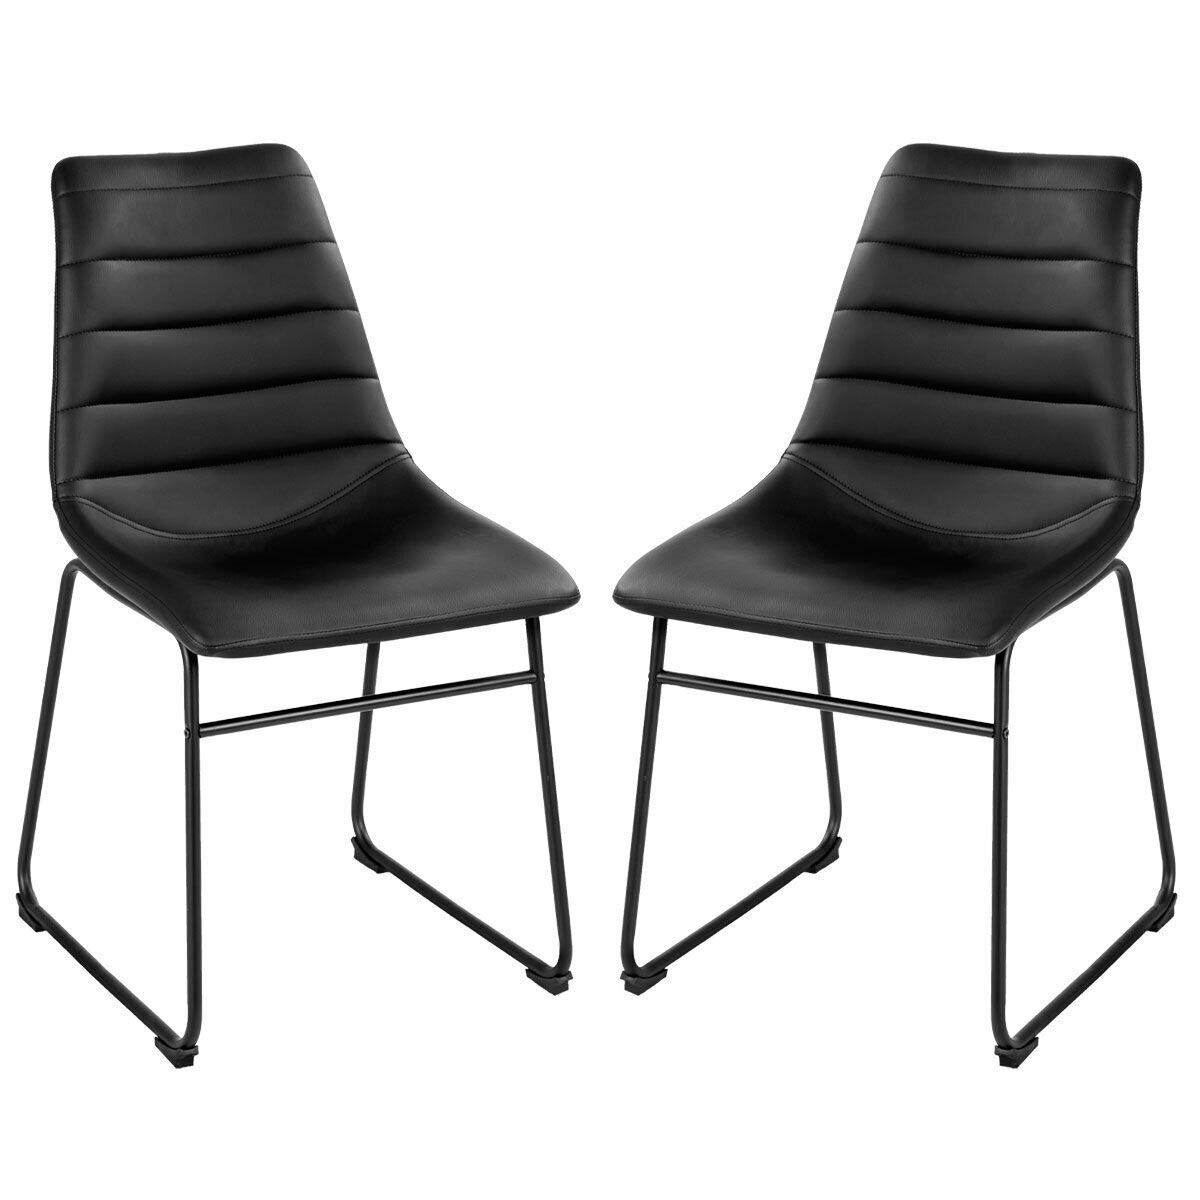 COSTWAY Set of 2 Dining Side Chairs, Modern PU Leather, Armless Padded Seat Back Bistro for Pub, Dining Kitchen w Metal Legs, Black